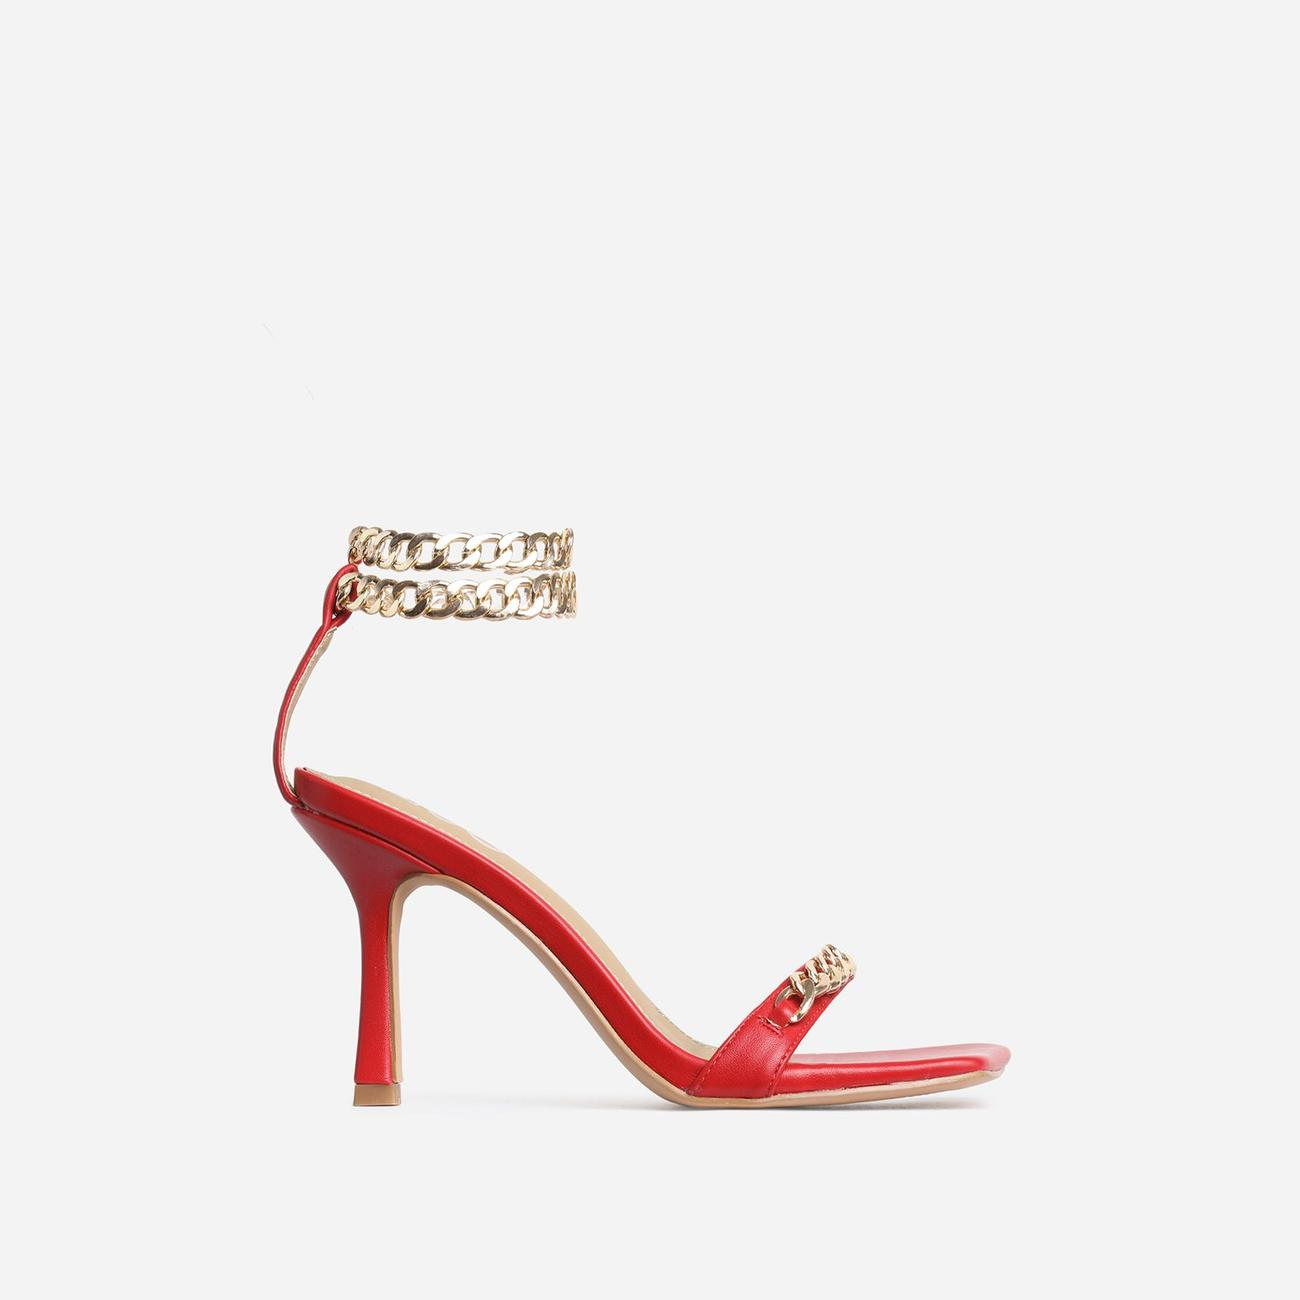 Venice Chain Detail Strap Square Toe Barely There Heel In Red Faux Leather Image 1